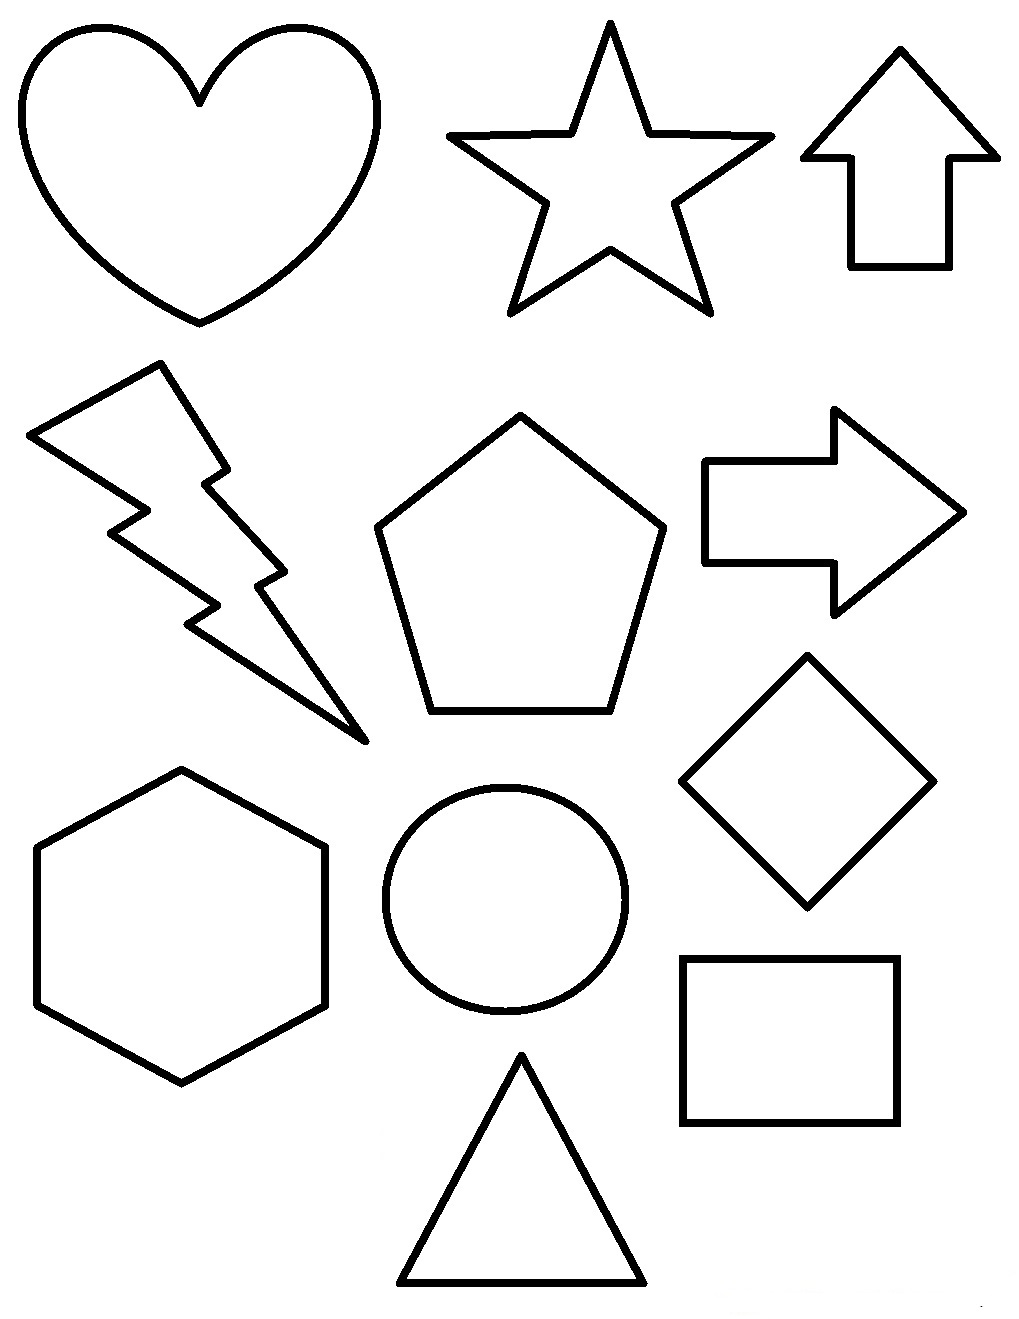 coloring pictures with shapes printable shapes coloring pages for kids cool2bkids pictures shapes coloring with